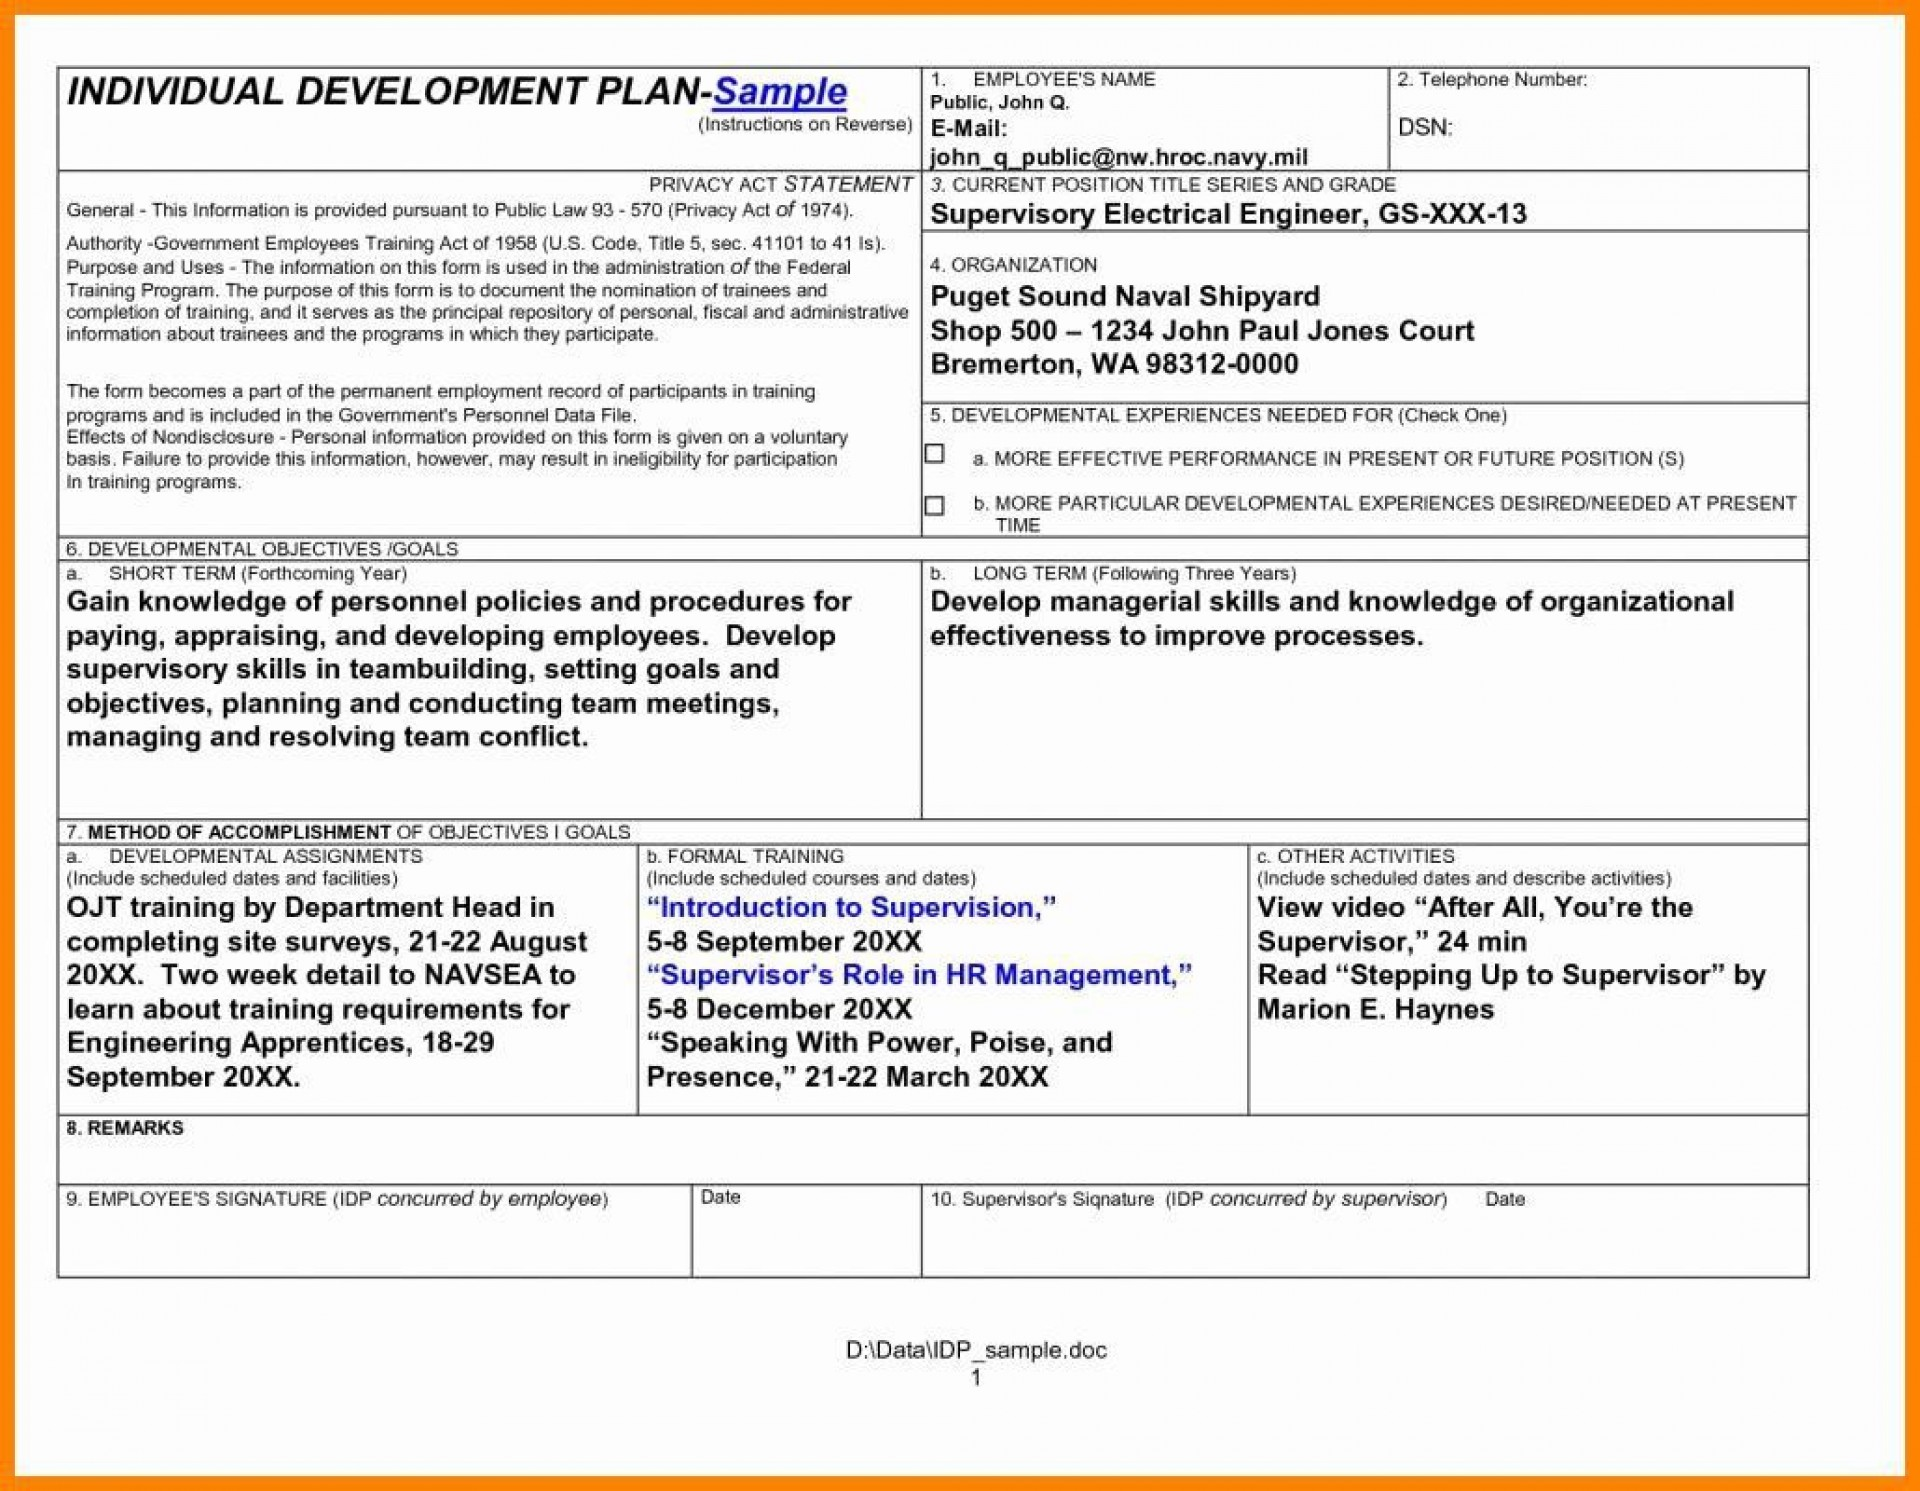 001 Incredible Personal Development Plan Template Doc High Def  Doctor Word Document1920